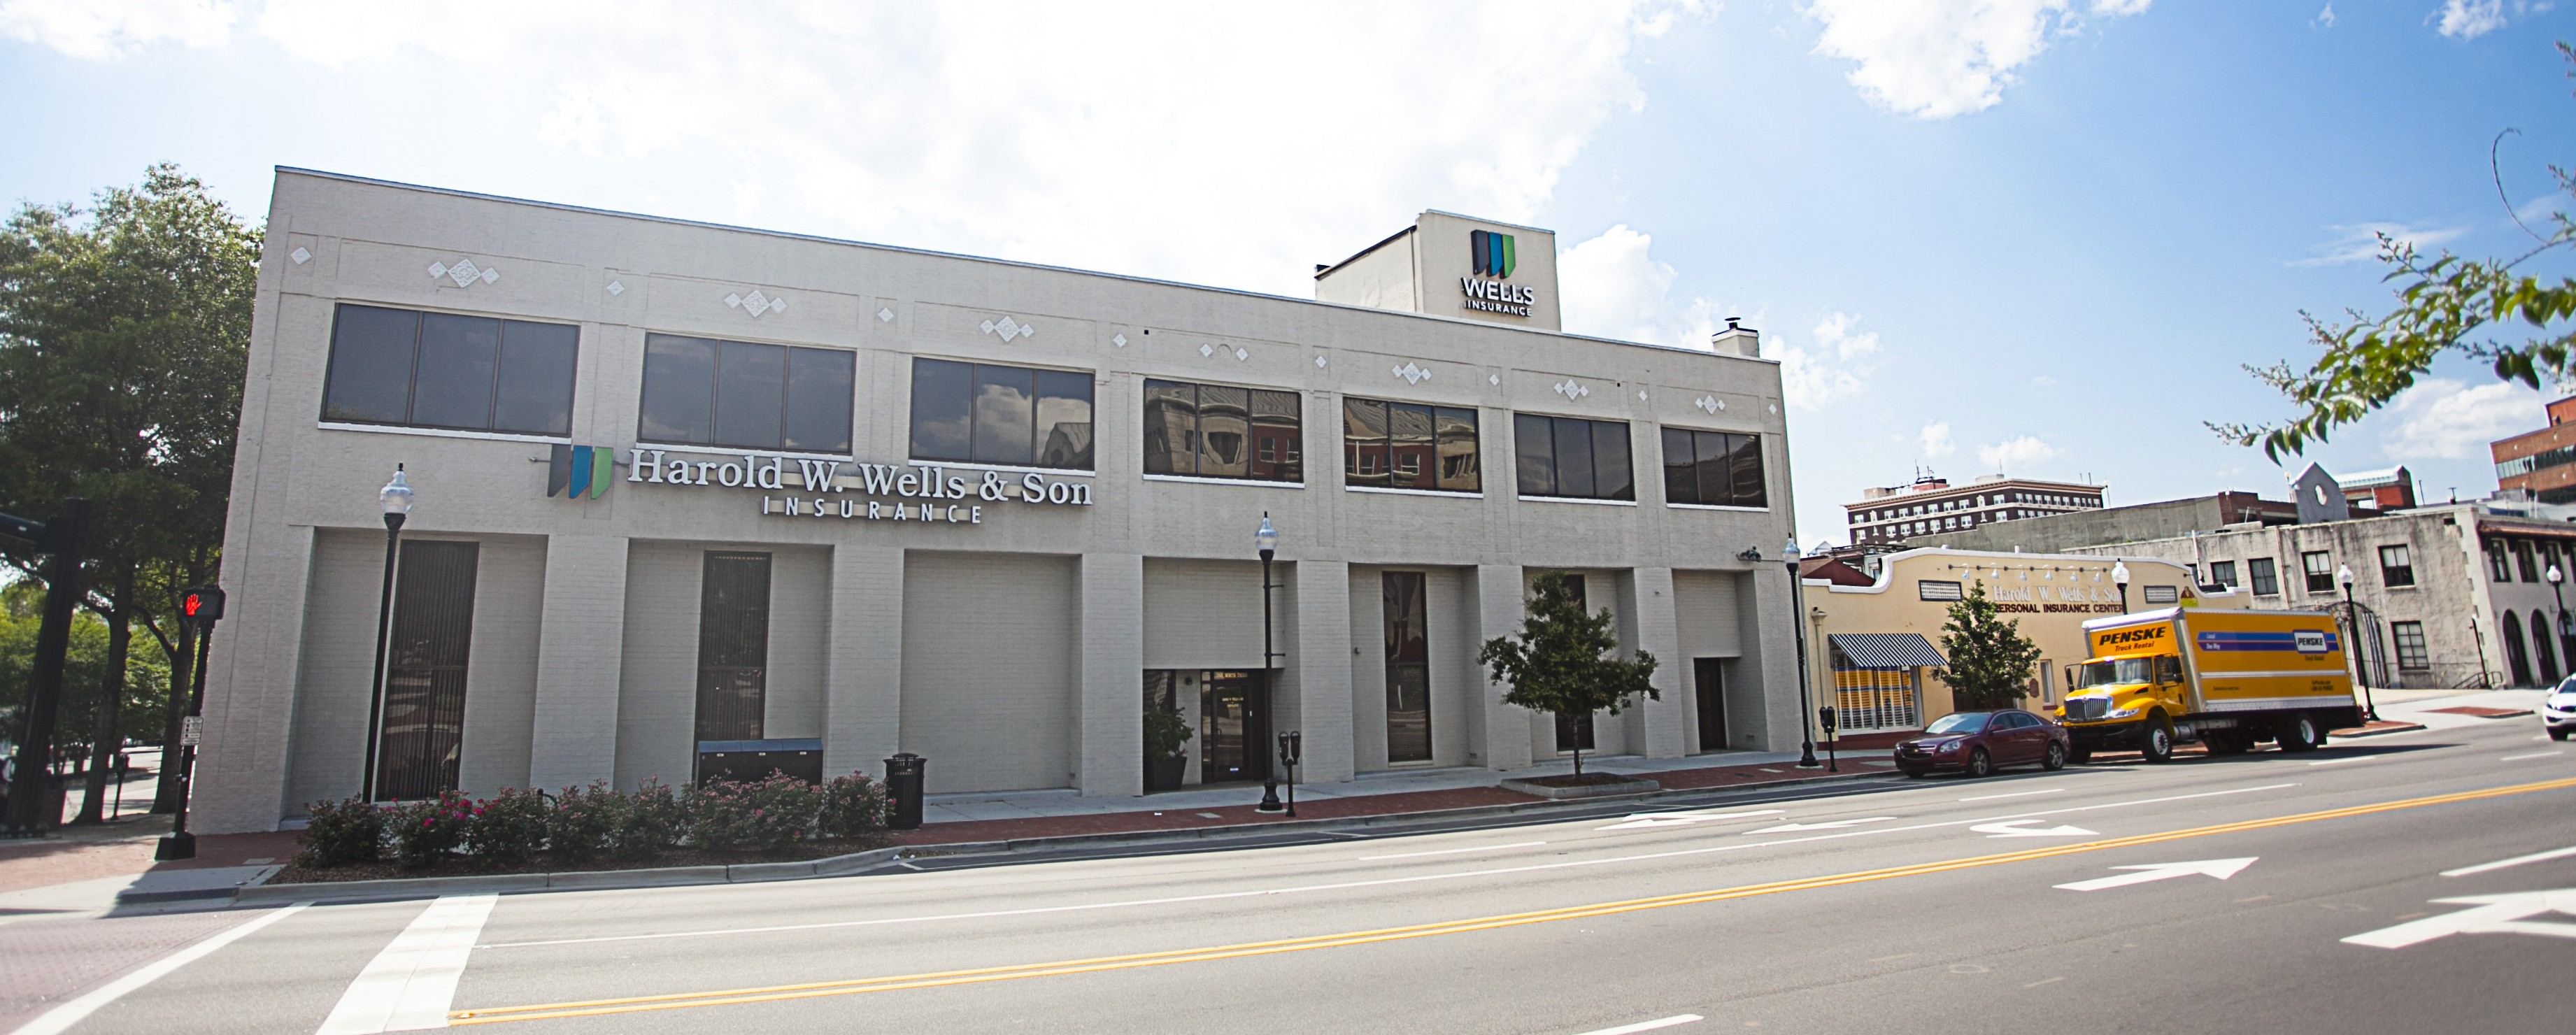 Wells Insurance's headquarters located on the corner of Market St. & 3rd St. in downtown Wilmington, NC. Best insurance company.